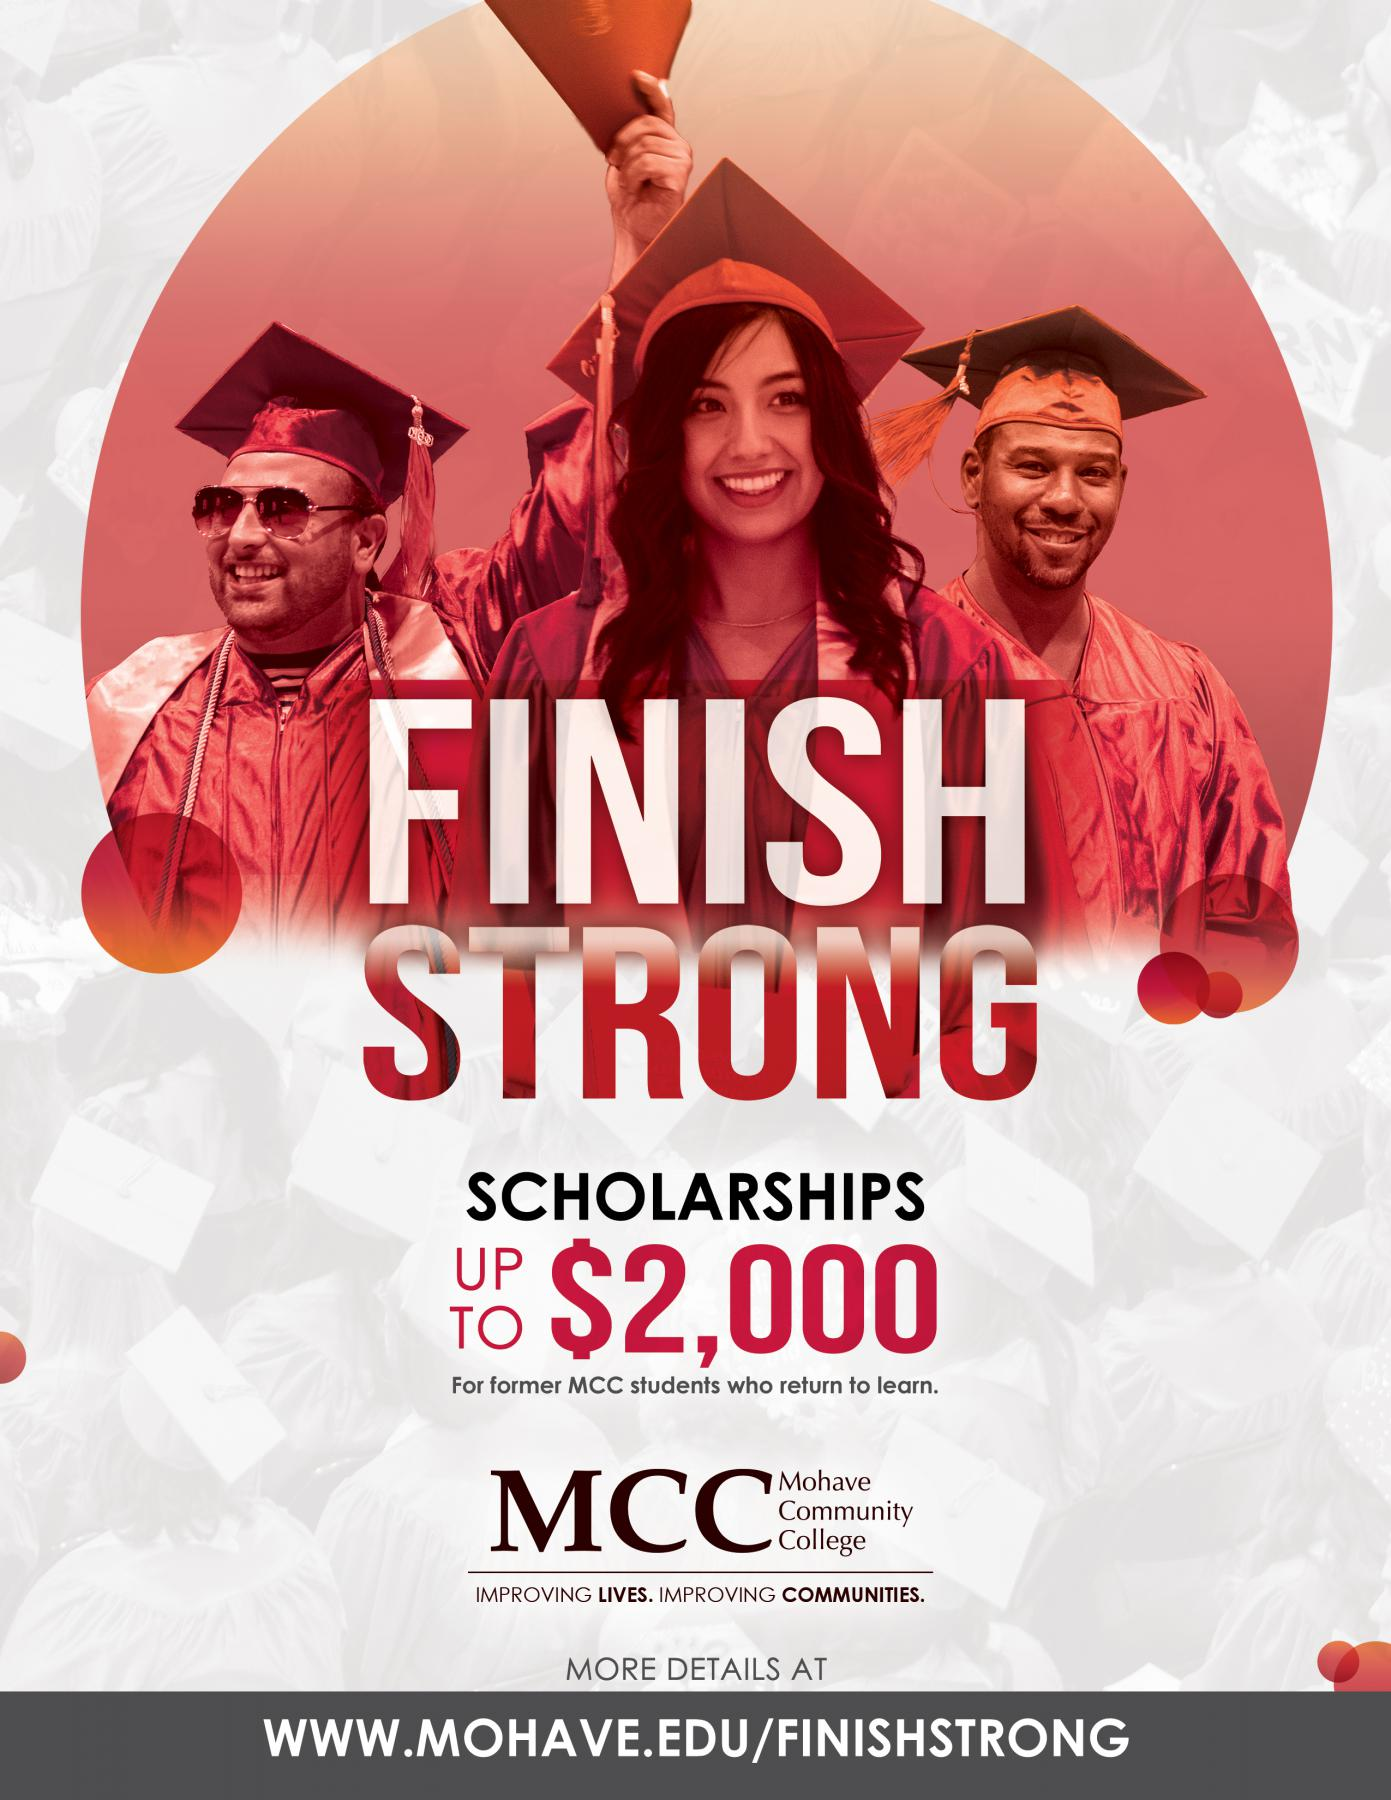 Finish Strong Scholarship call 866 MOHAVECC for more info